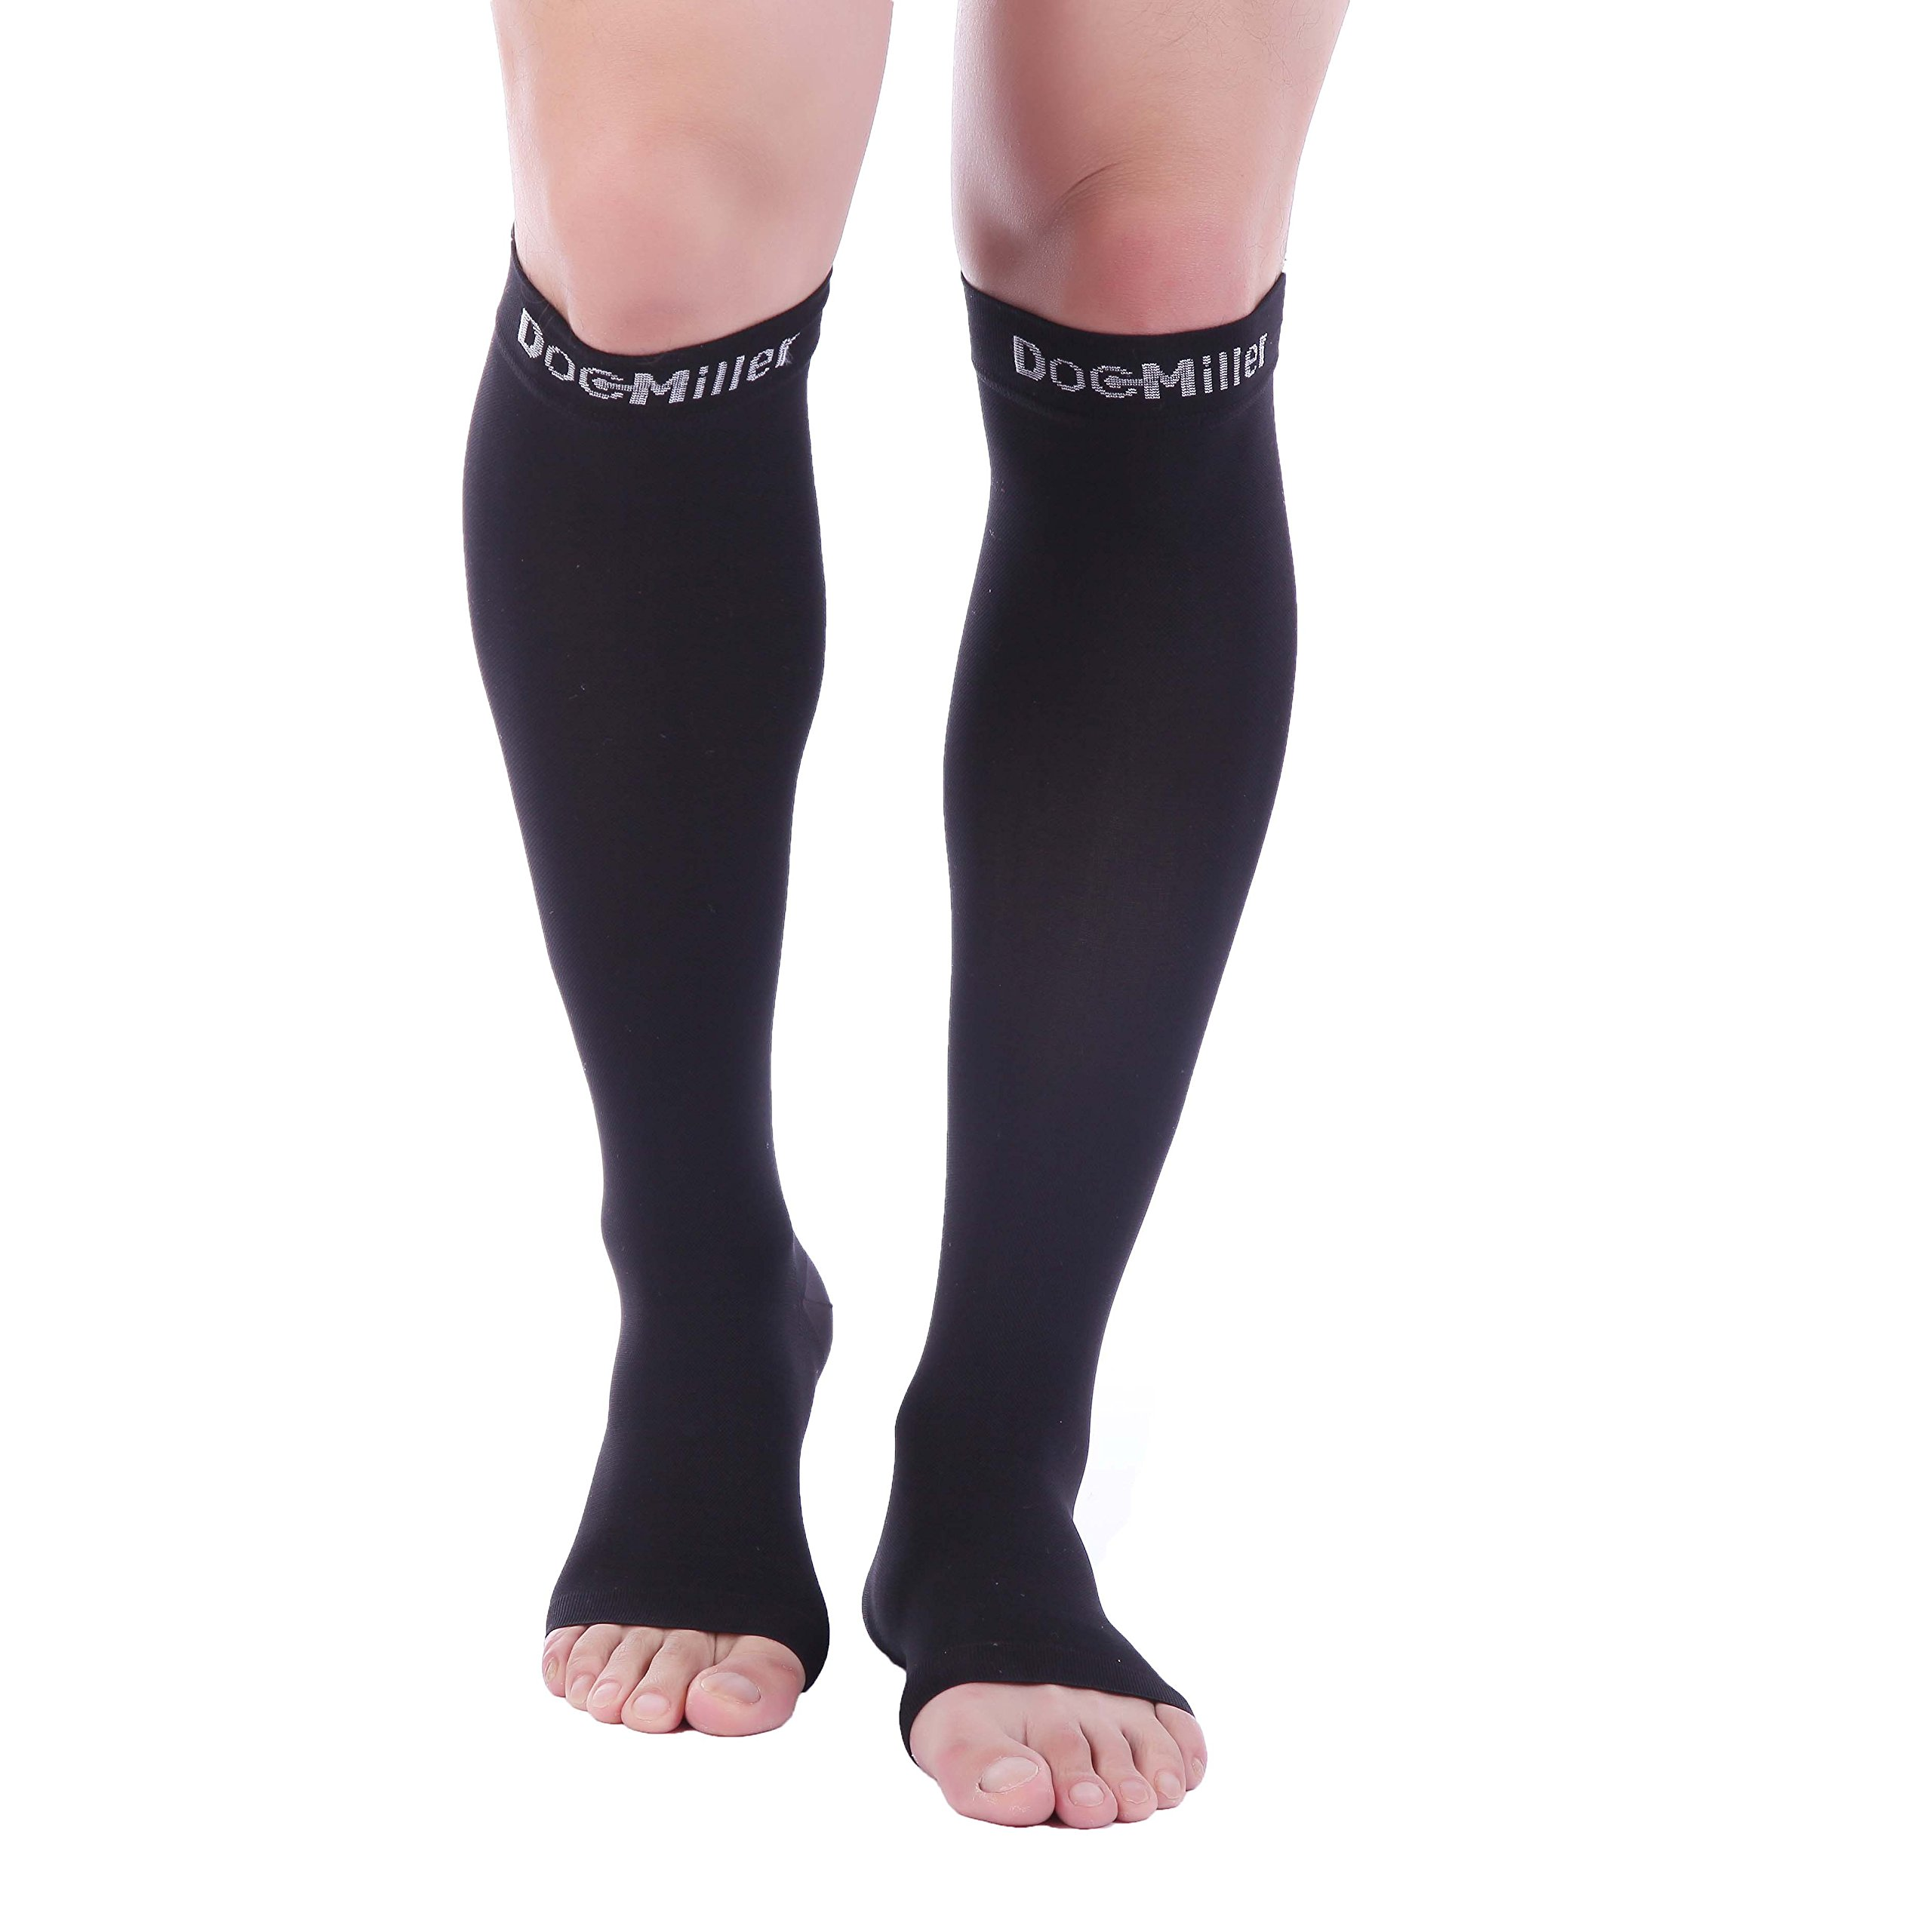 Doc Miller Premium Open Toe Compression Socks 1 Pair 30-40 mmHg Medical Grade Support Graduated Pressure Recovery Circulation Varicose Spider Veins Airplane Maternity Stockings (Black, Small)